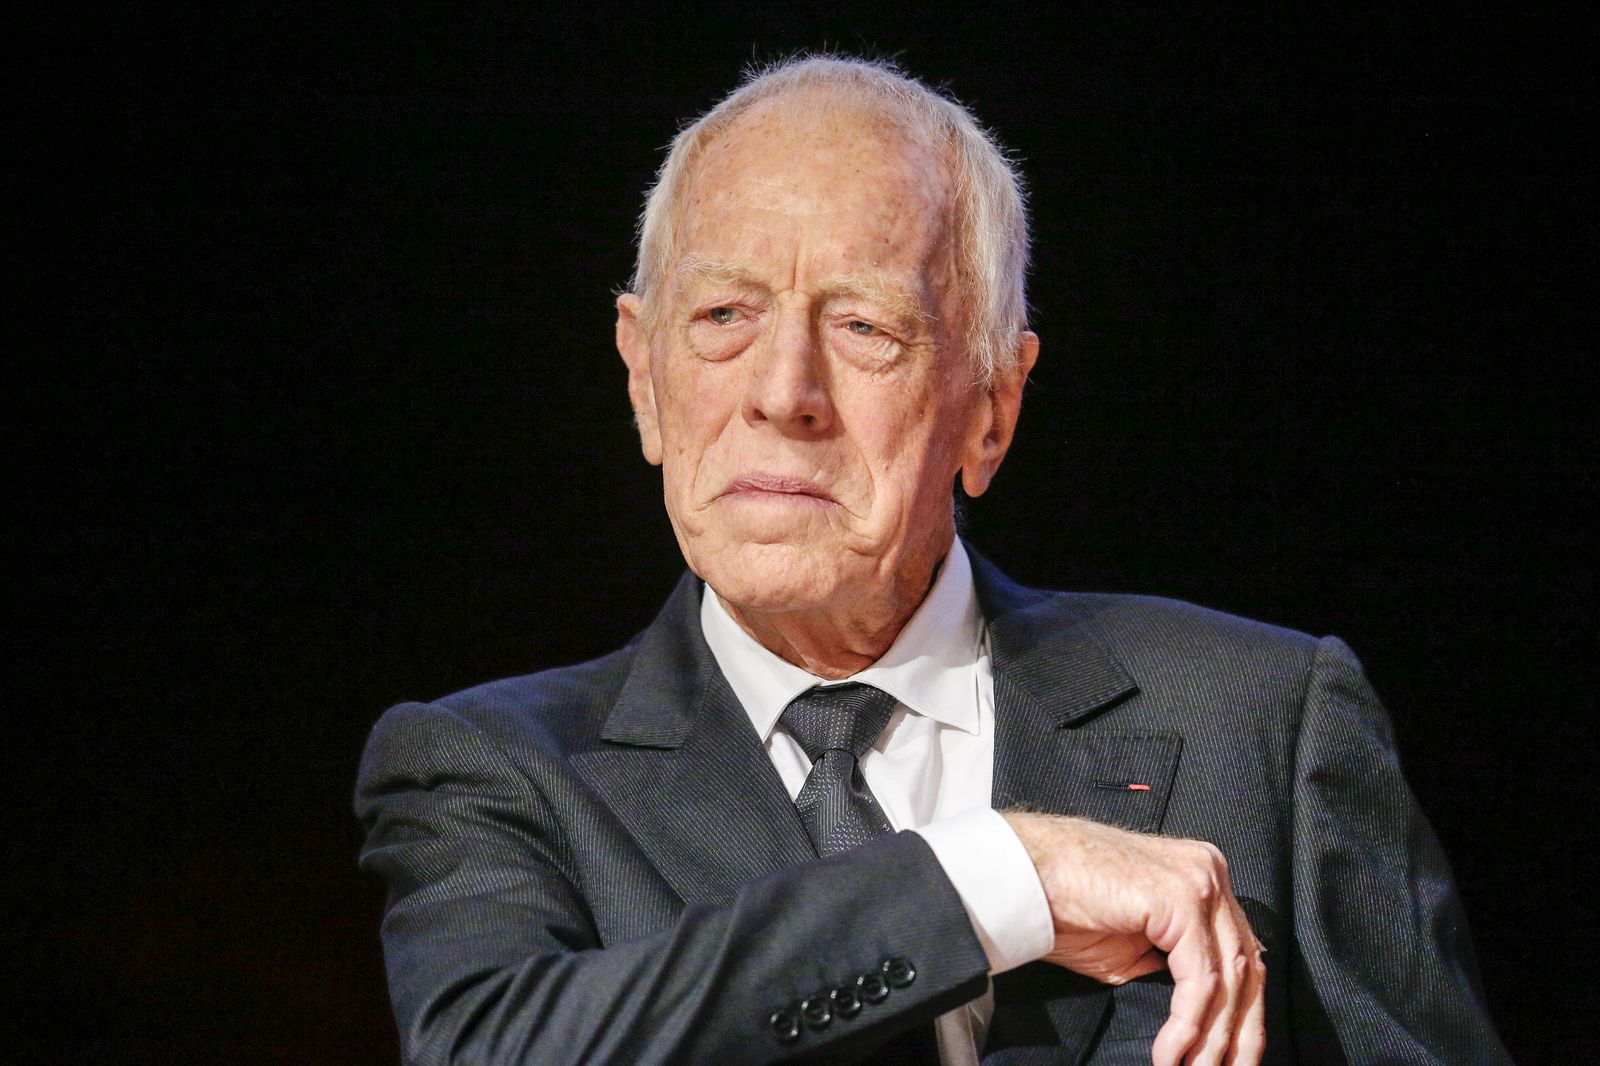 Swedish actor Von Sydow looks on during the 2015 Lumiere Grand Lyon film festival in Lyon